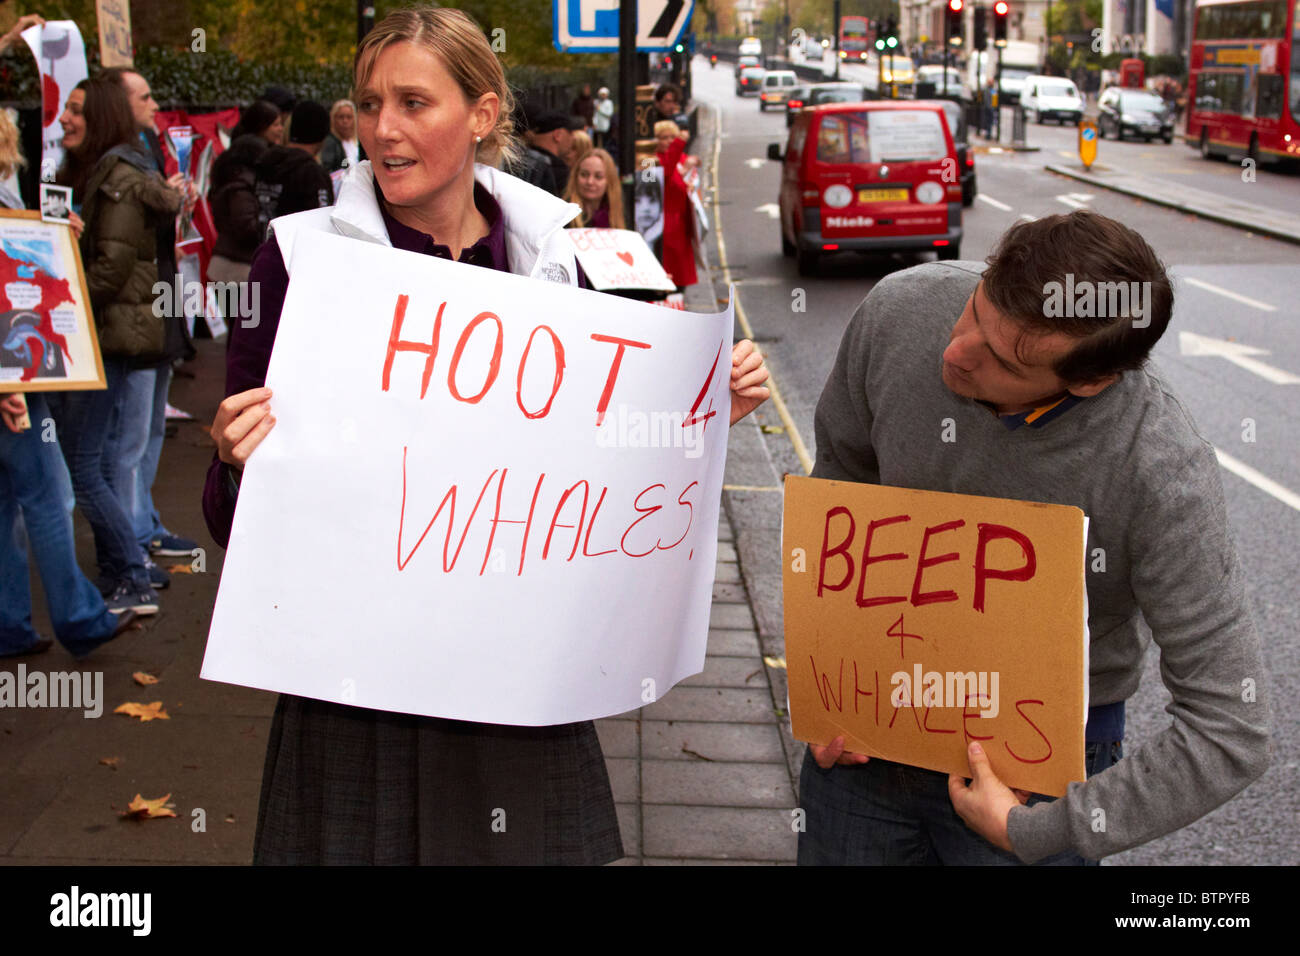 Protesters during an anti-whaling protest outside the Japanese embassy - Stock Image